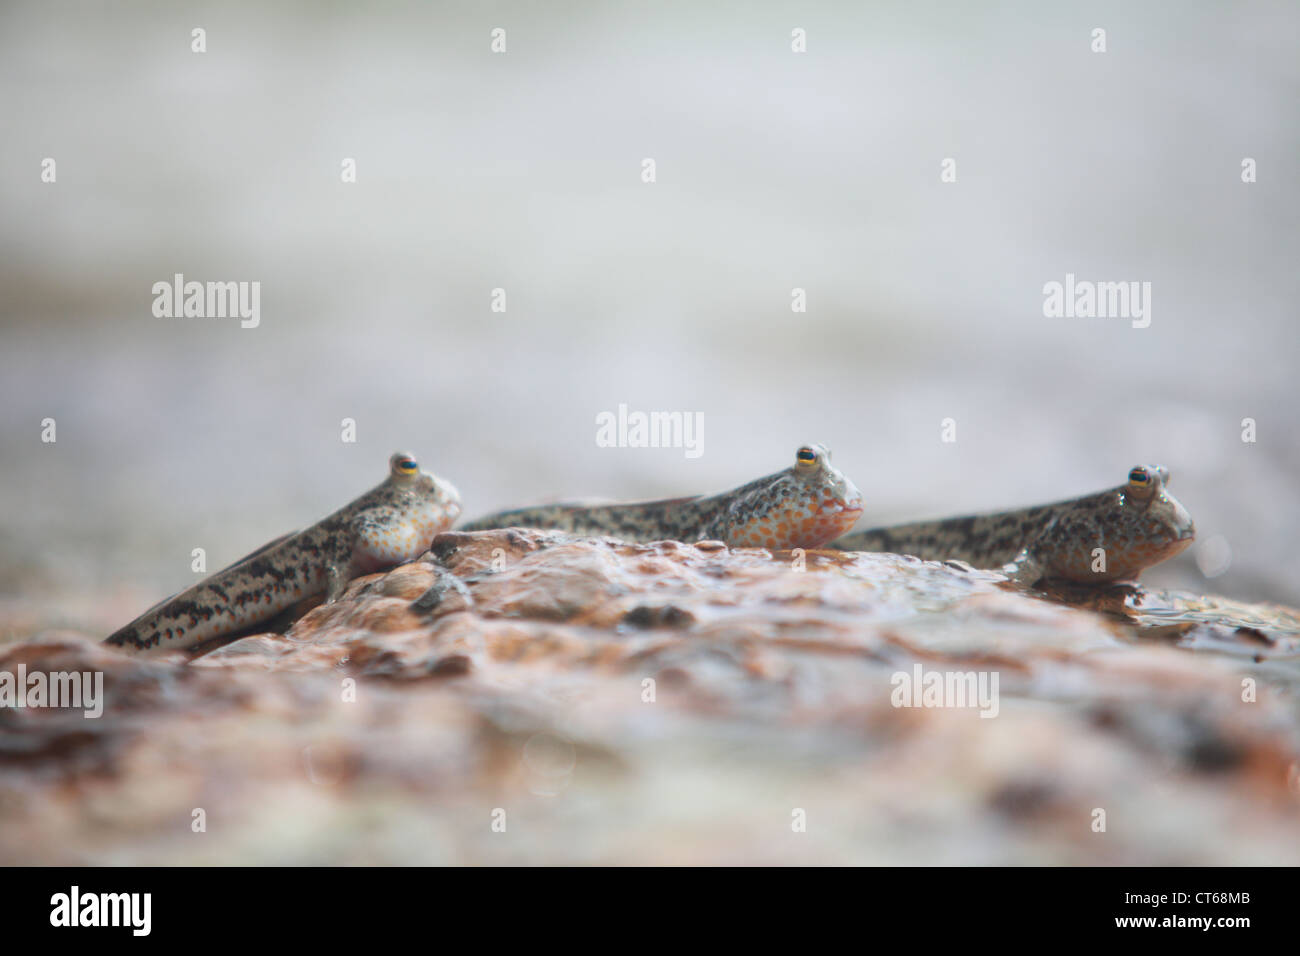 Mudskipper in a mangrove swamp on the coast of thailand - Stock Image